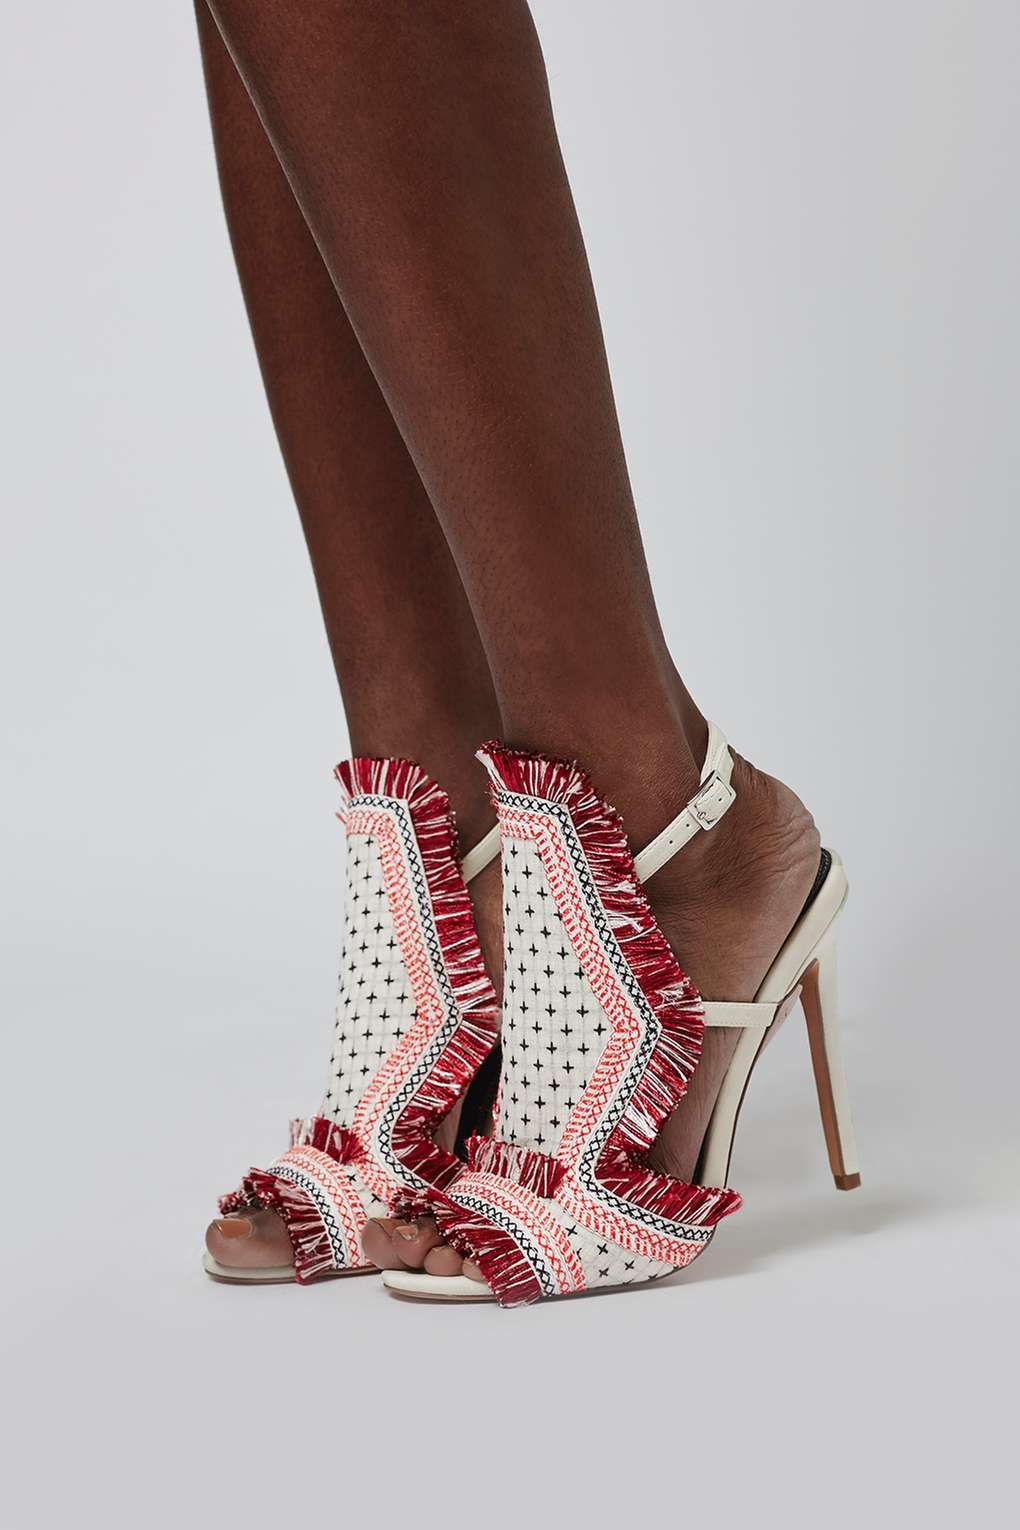 Sandals shoes topshop